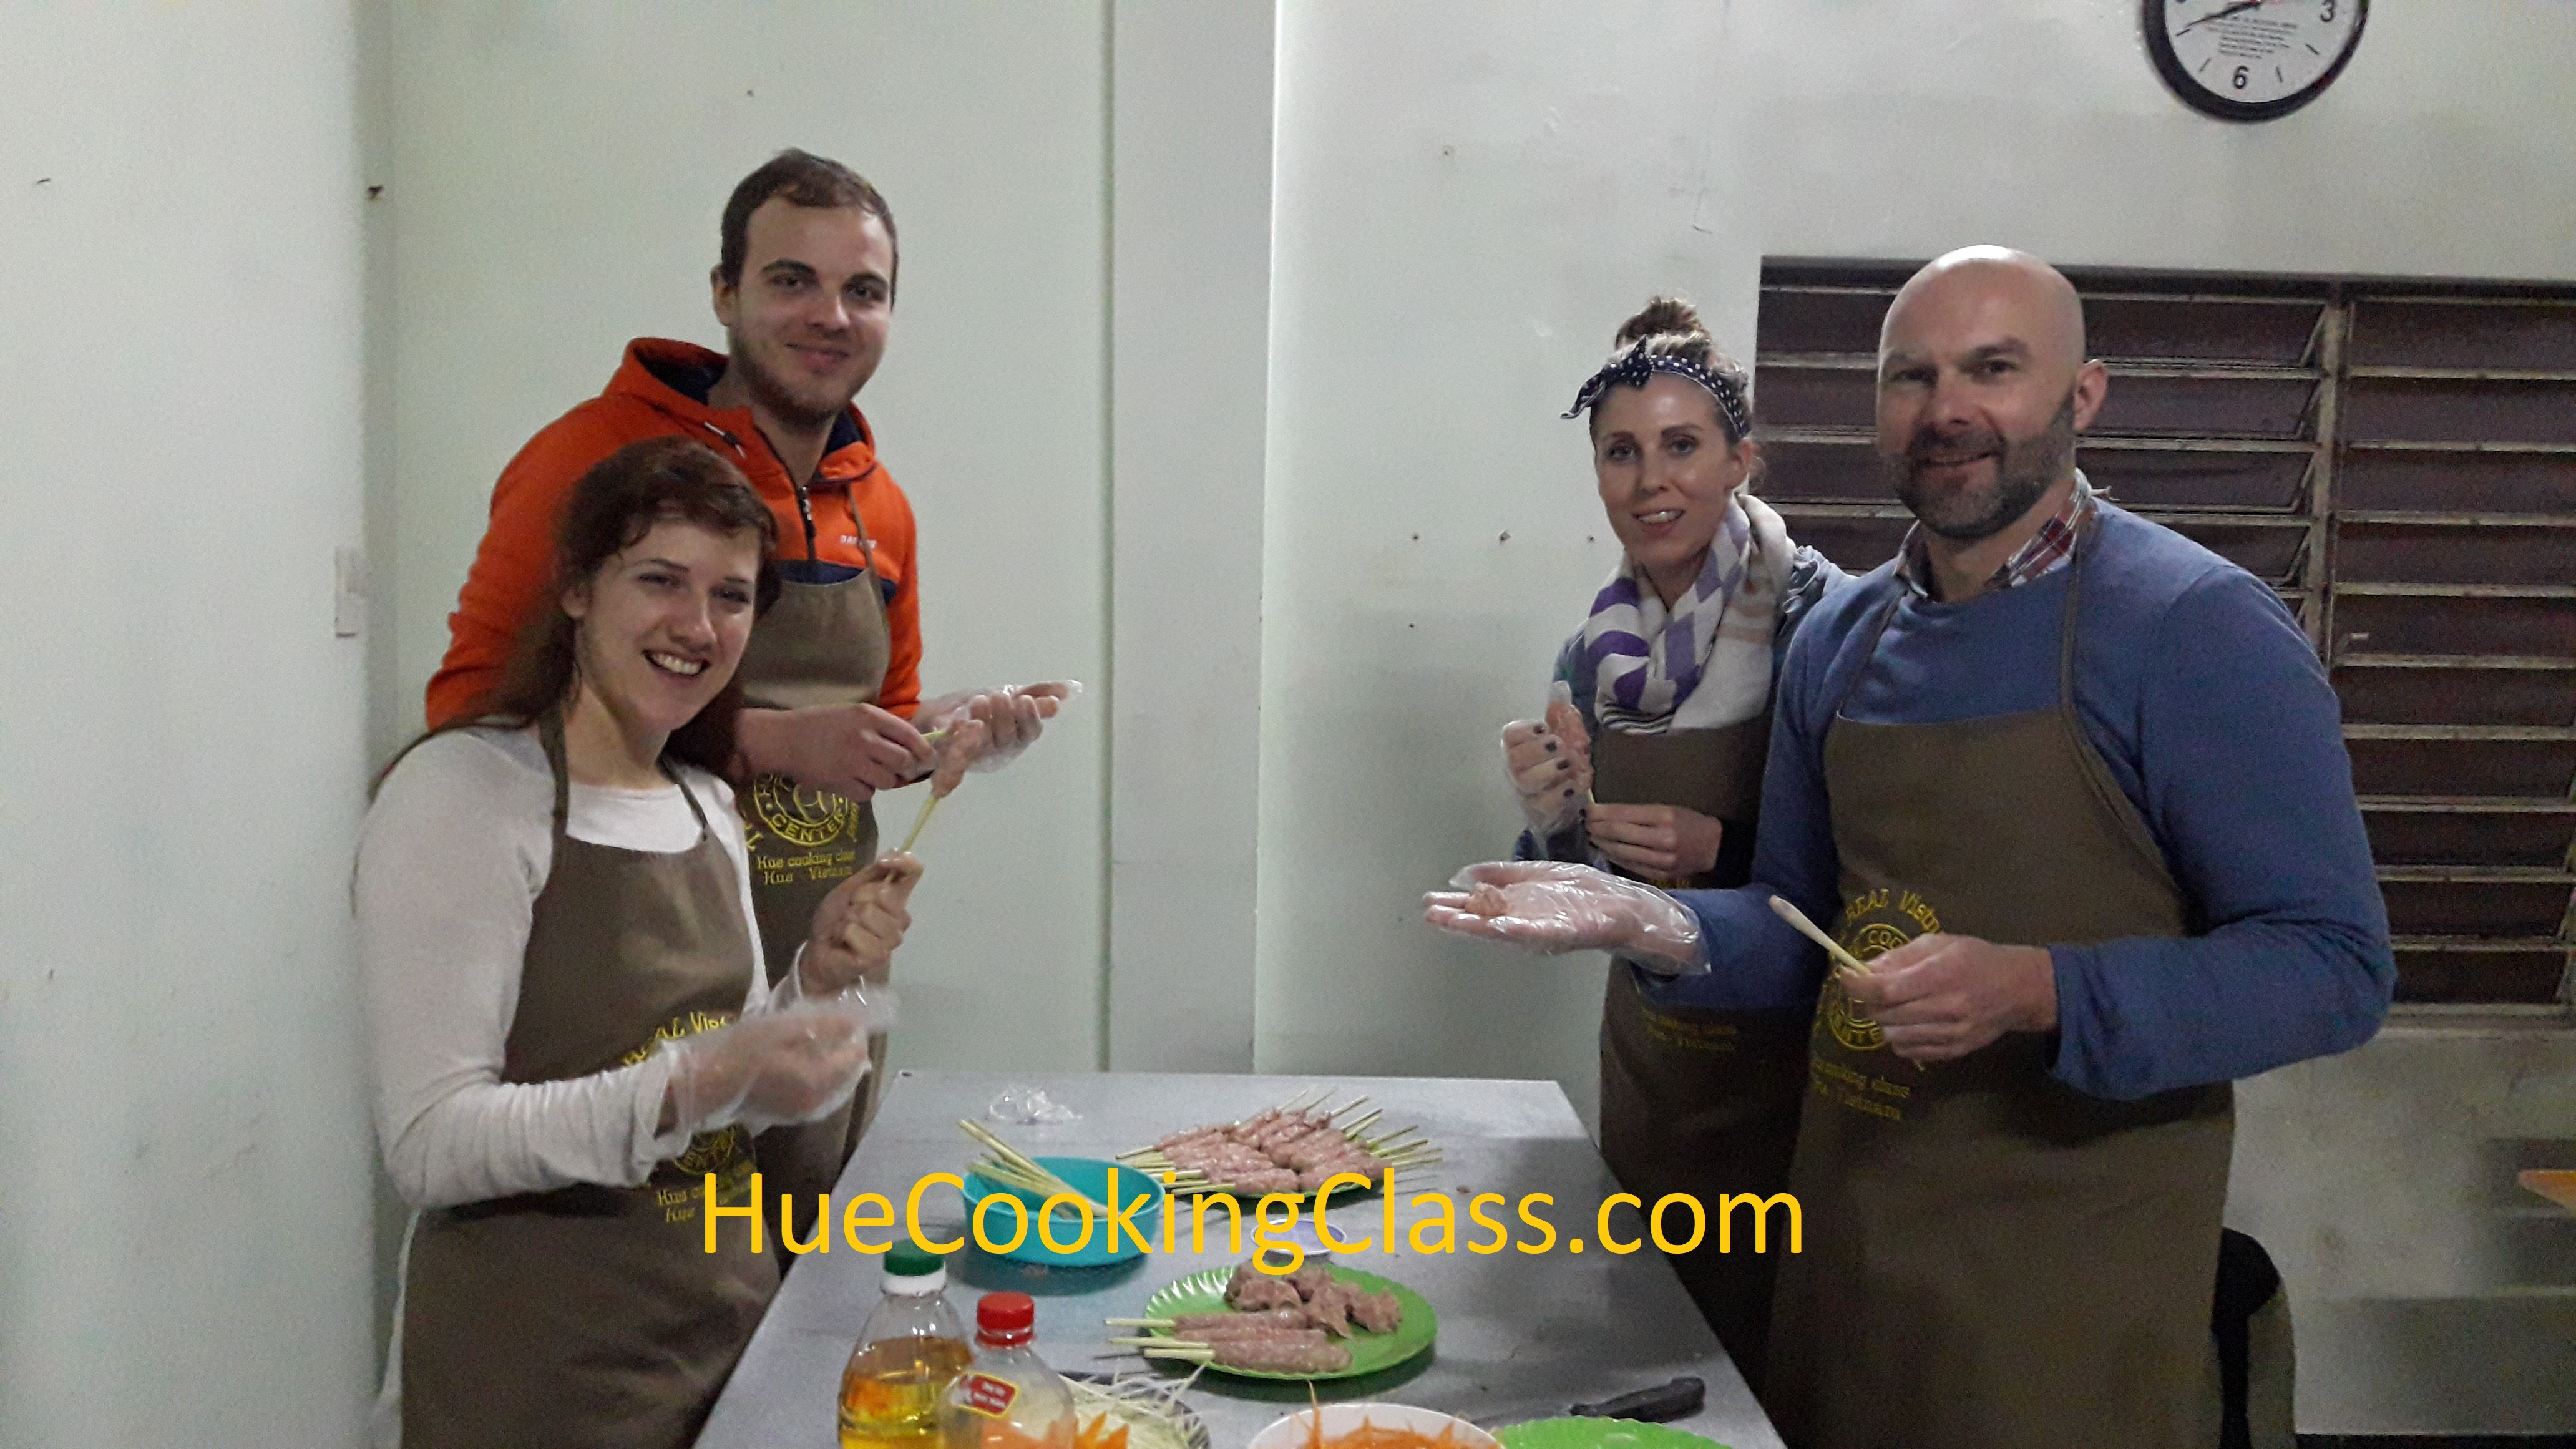 Hue Cooking Course